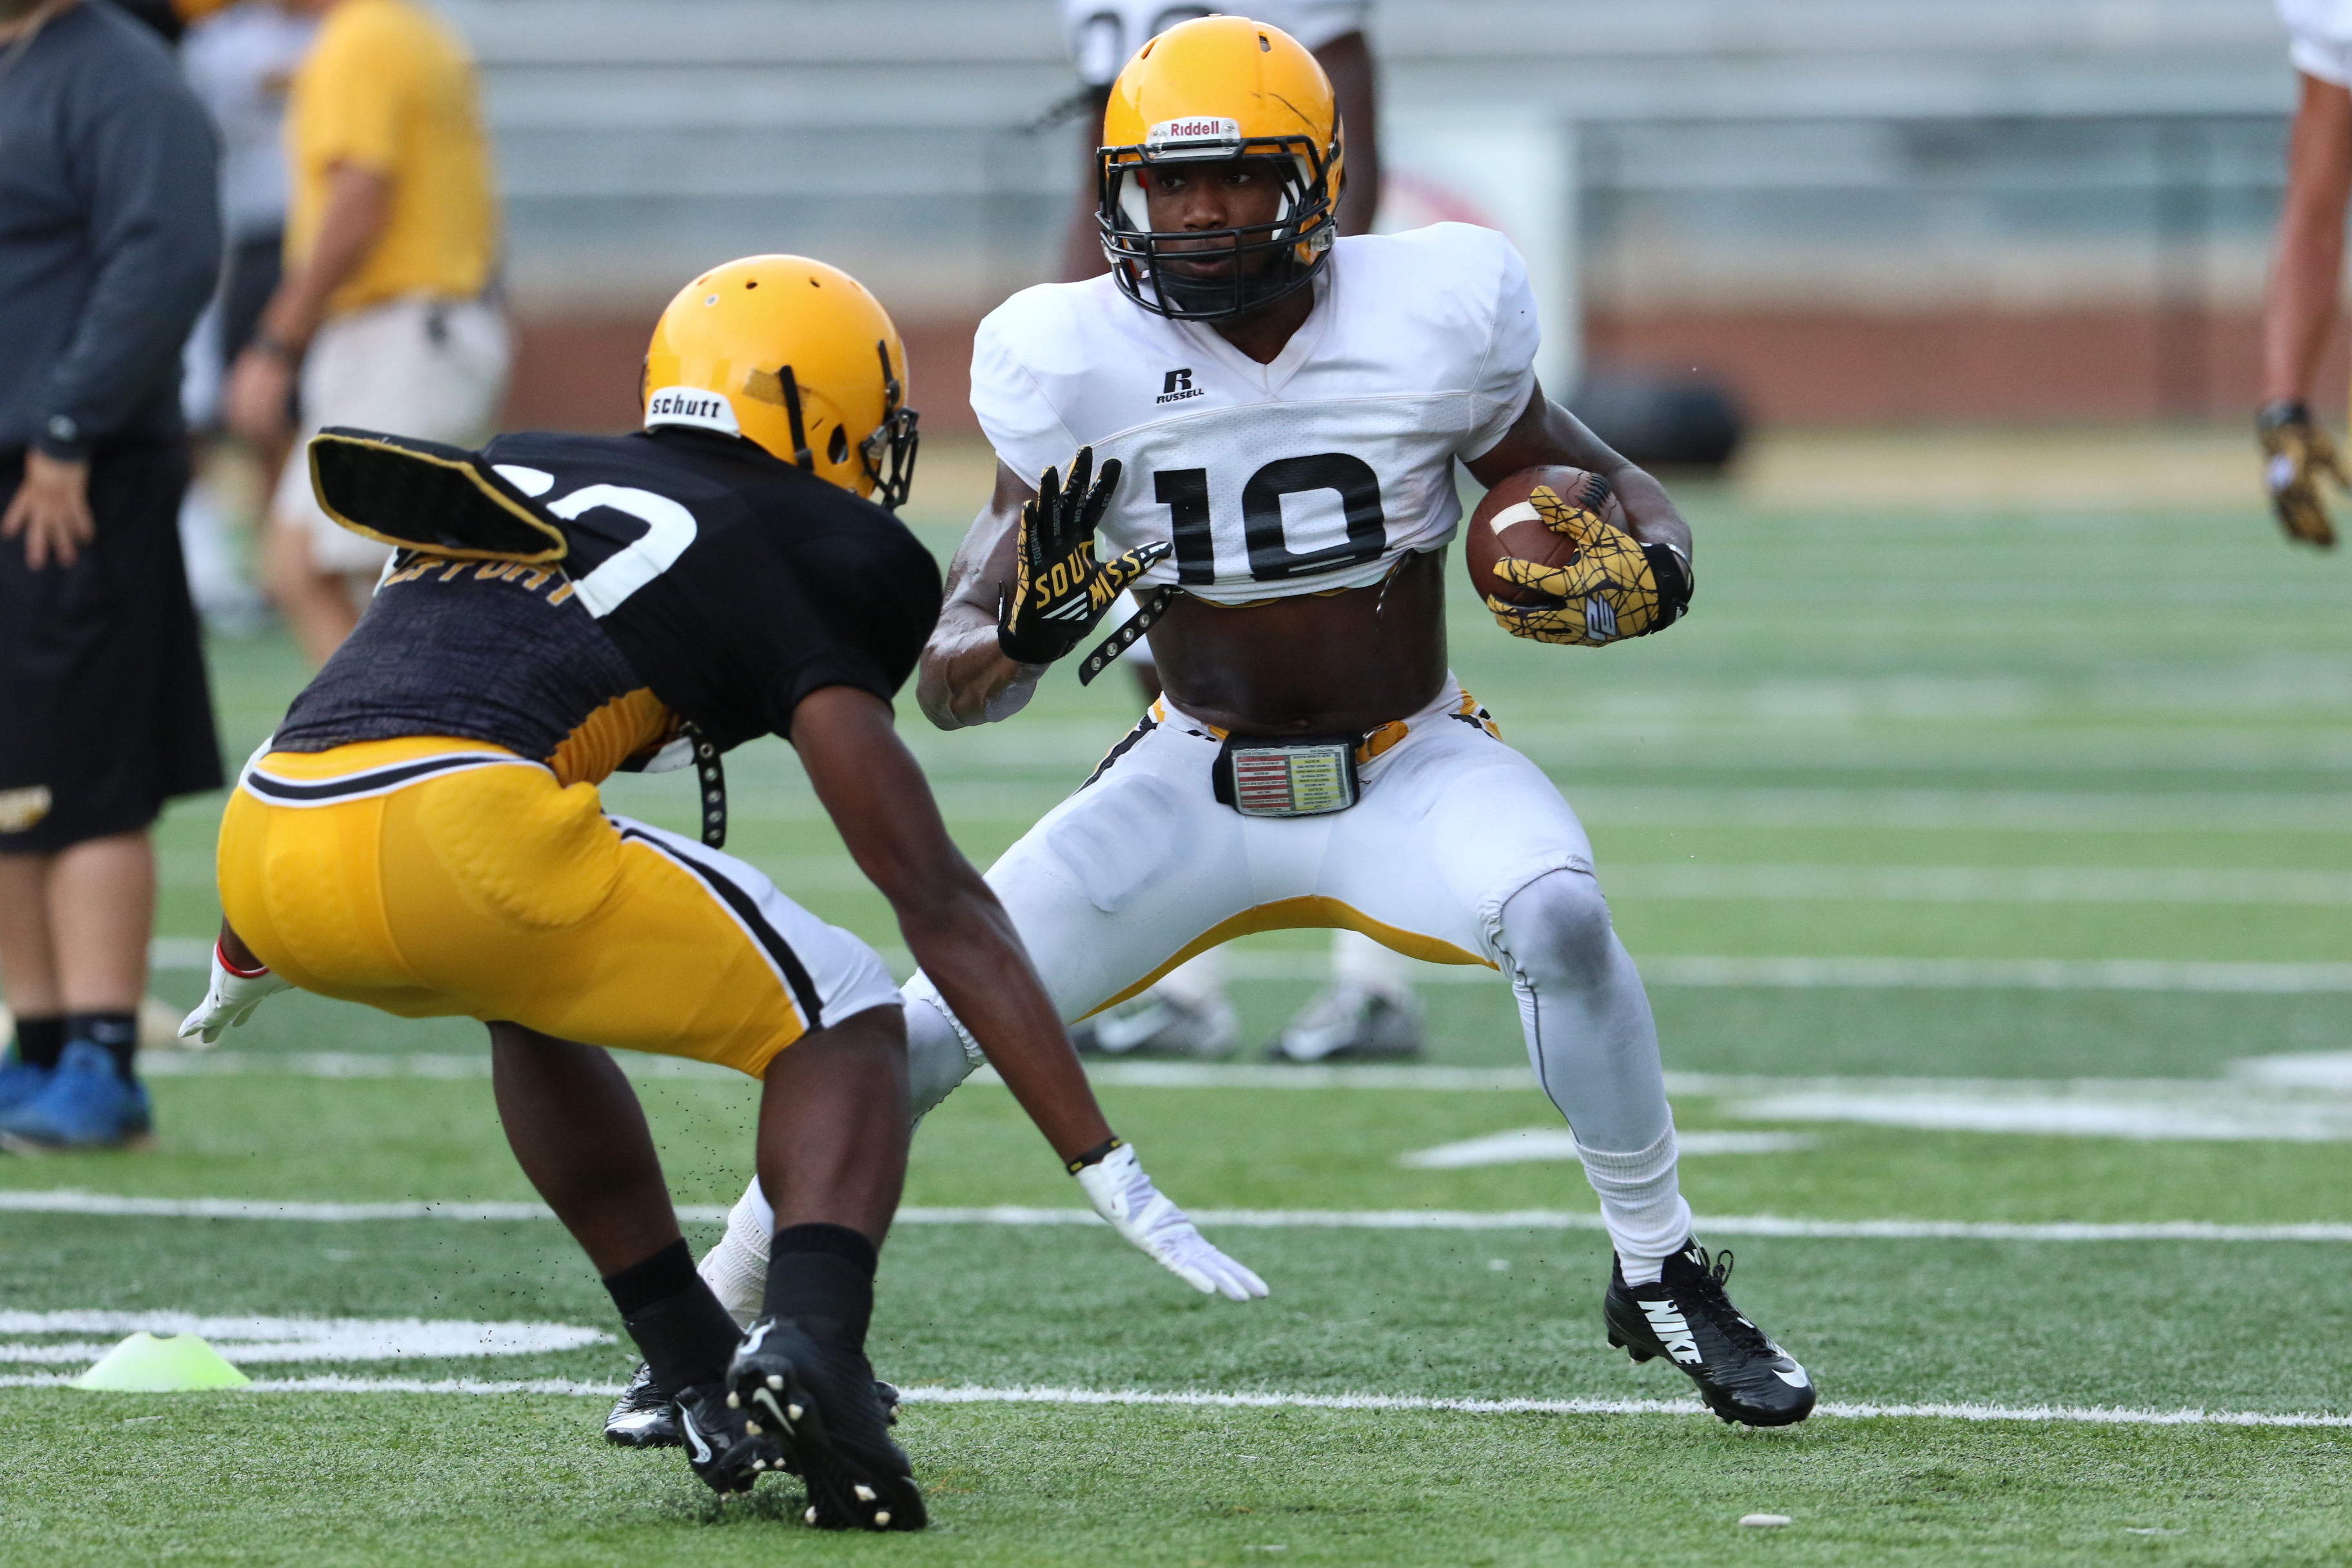 USM offense searching for explosion